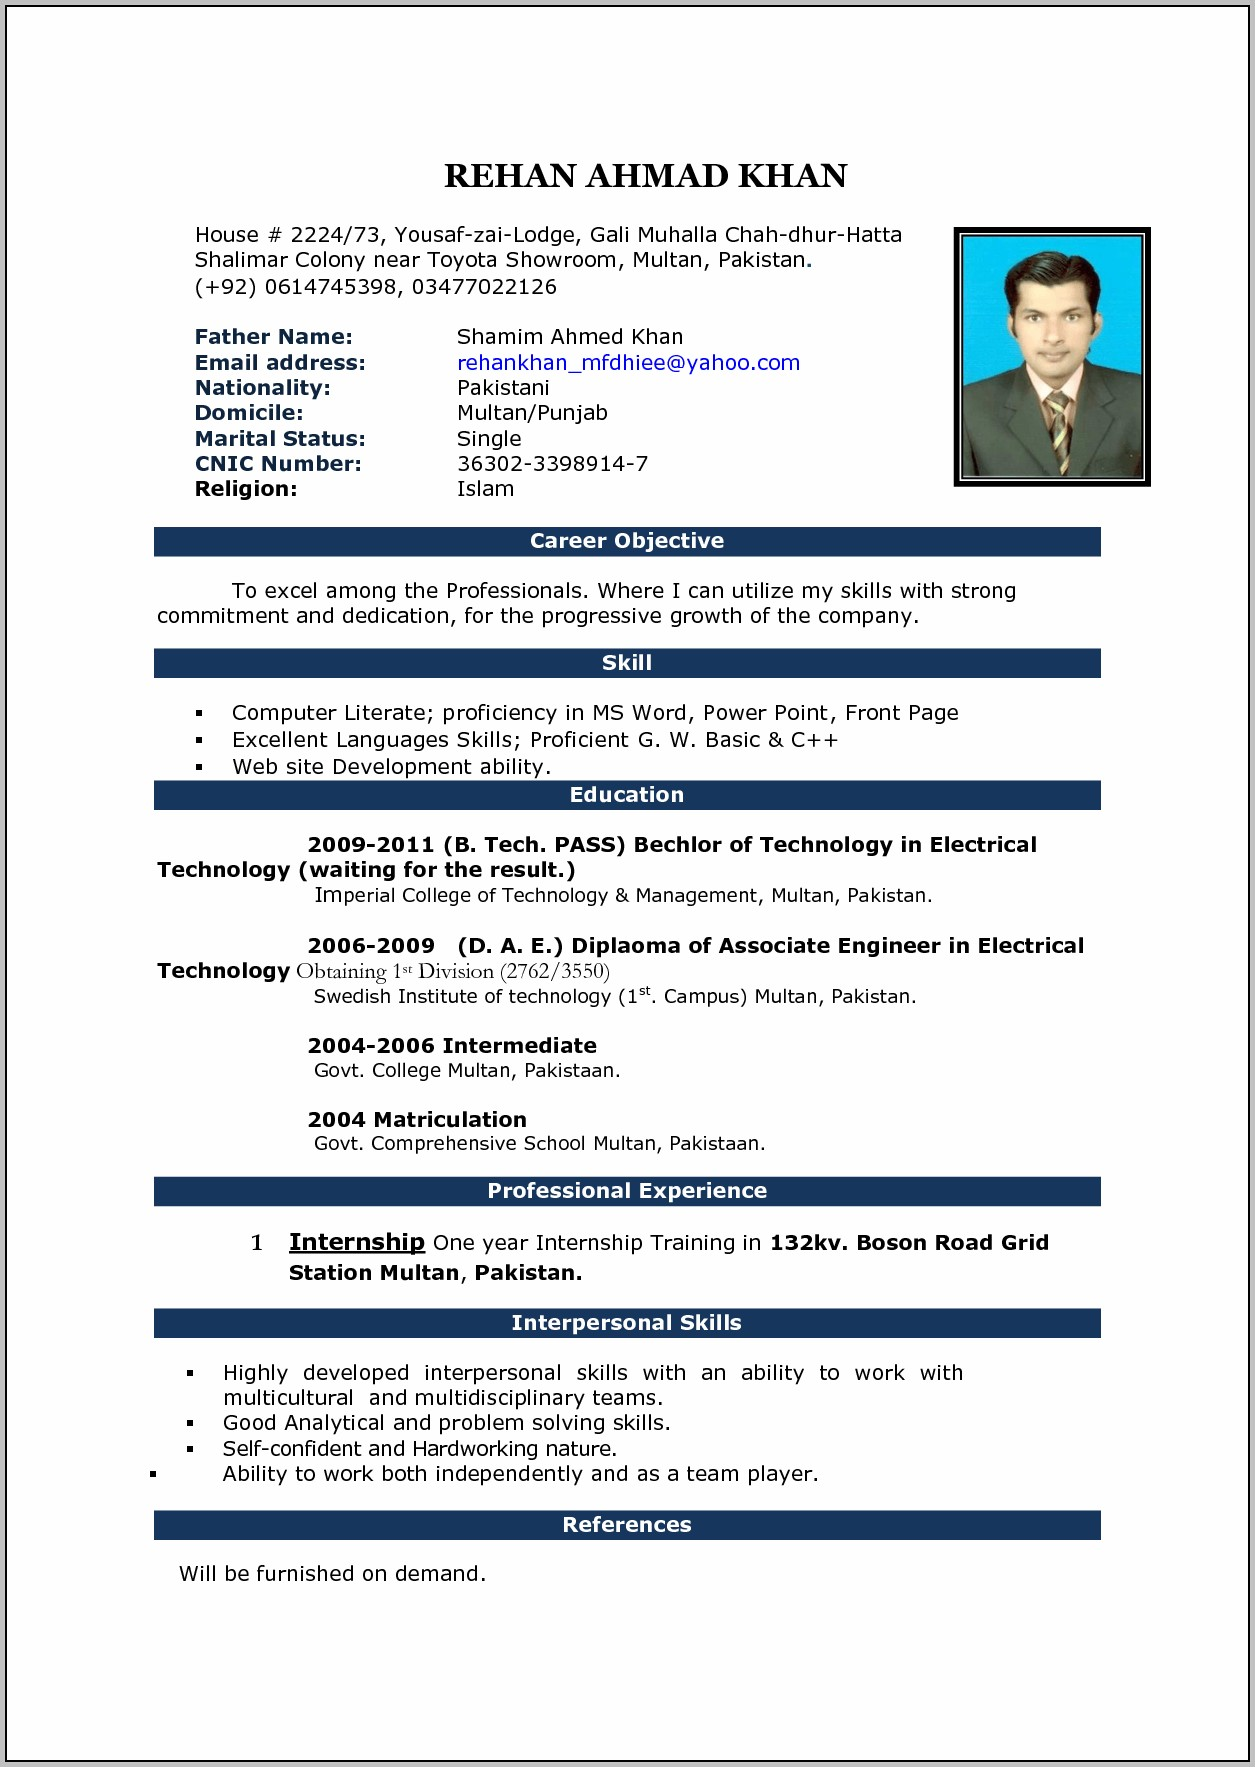 Free Download Professional Resume In Word Format